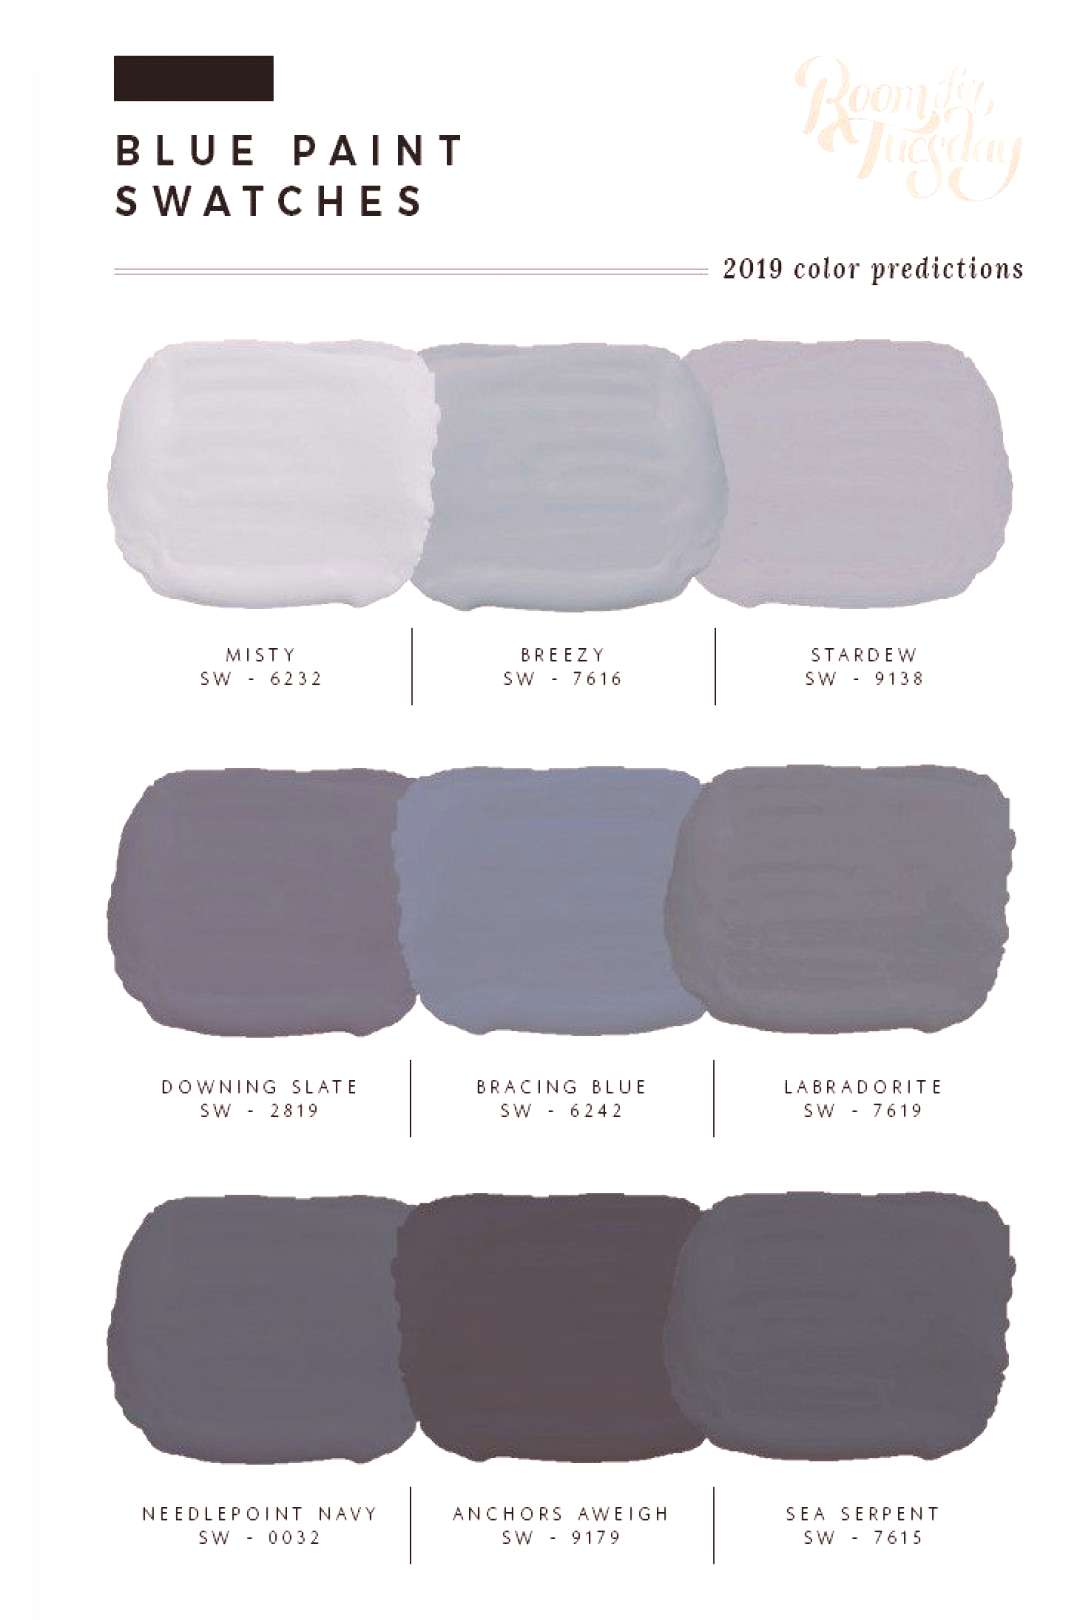 Predicted Paint Colors for 2019 -